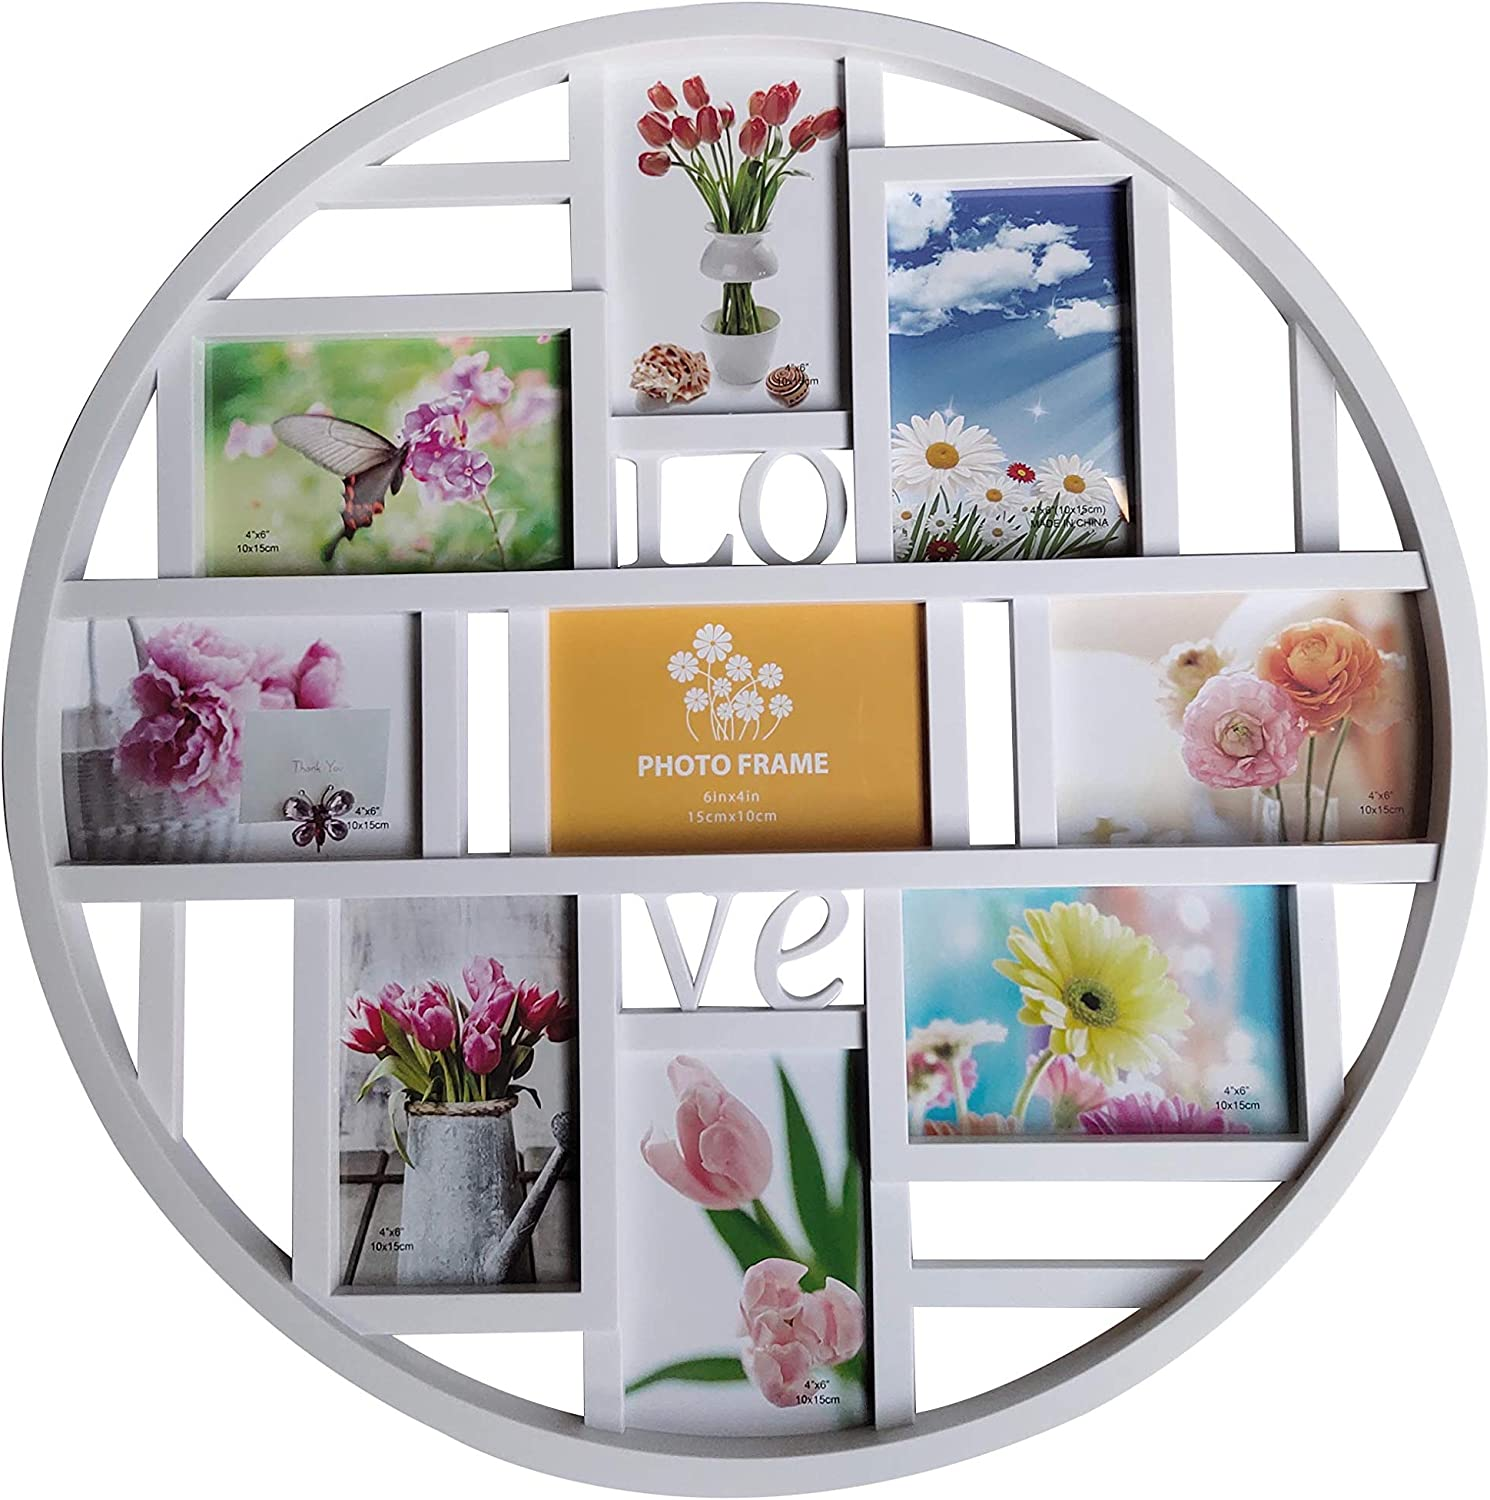 Mkun 4x6 Wall Collage Photo Frames- Round Circular Wall hanging Picture Collage Frame with LOVE word art, 9- Opening (White)